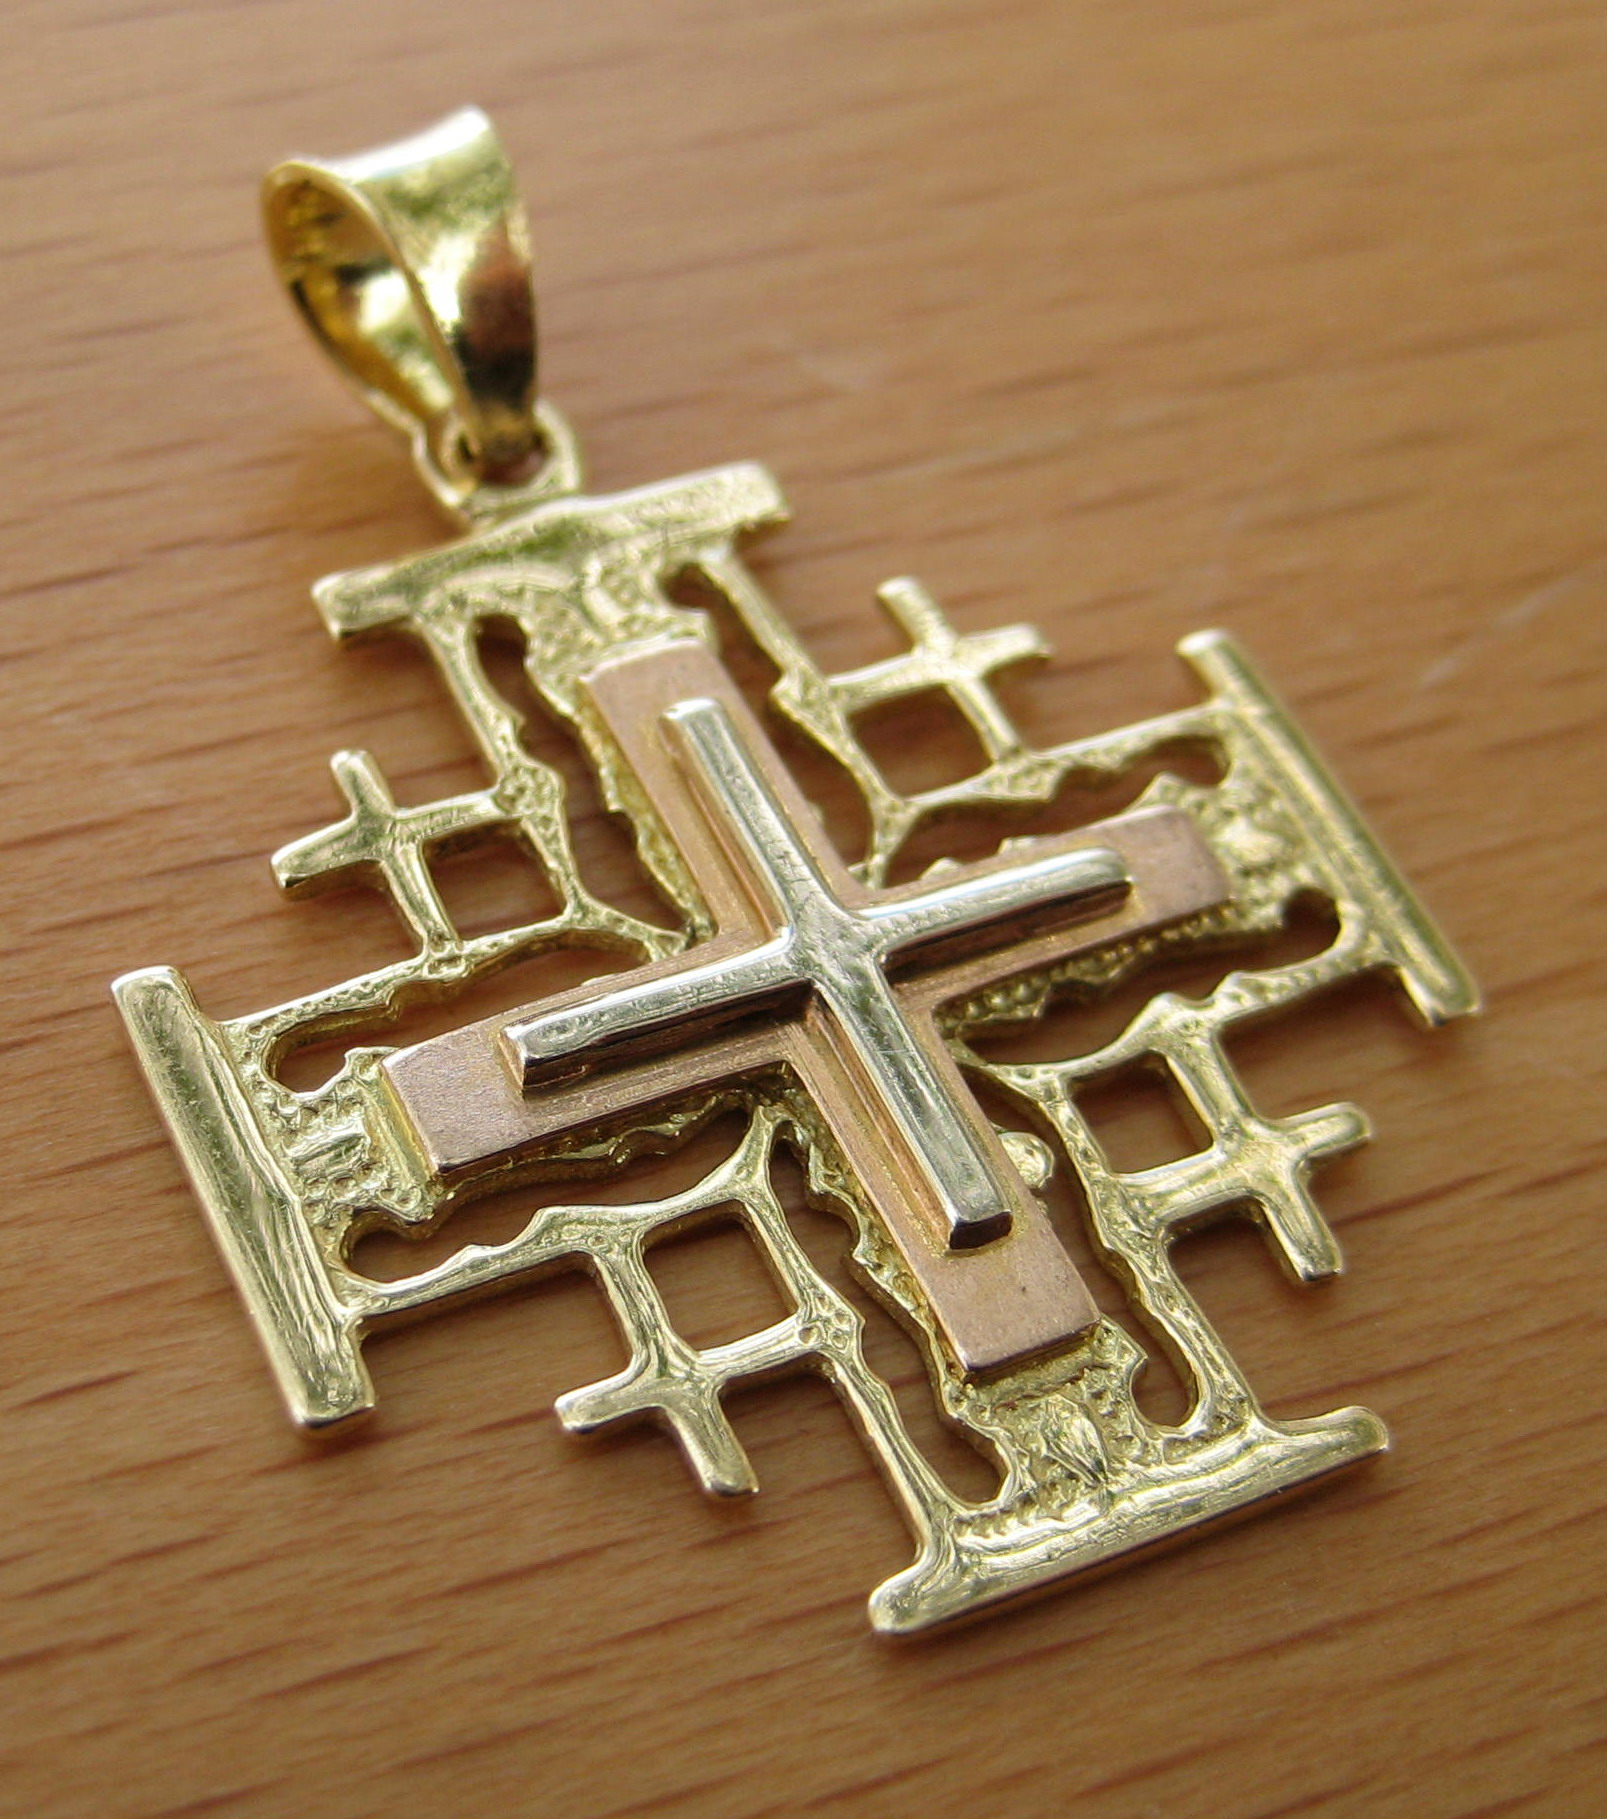 catholic cart wishlist the cross jerusalem necklace company to add pendant